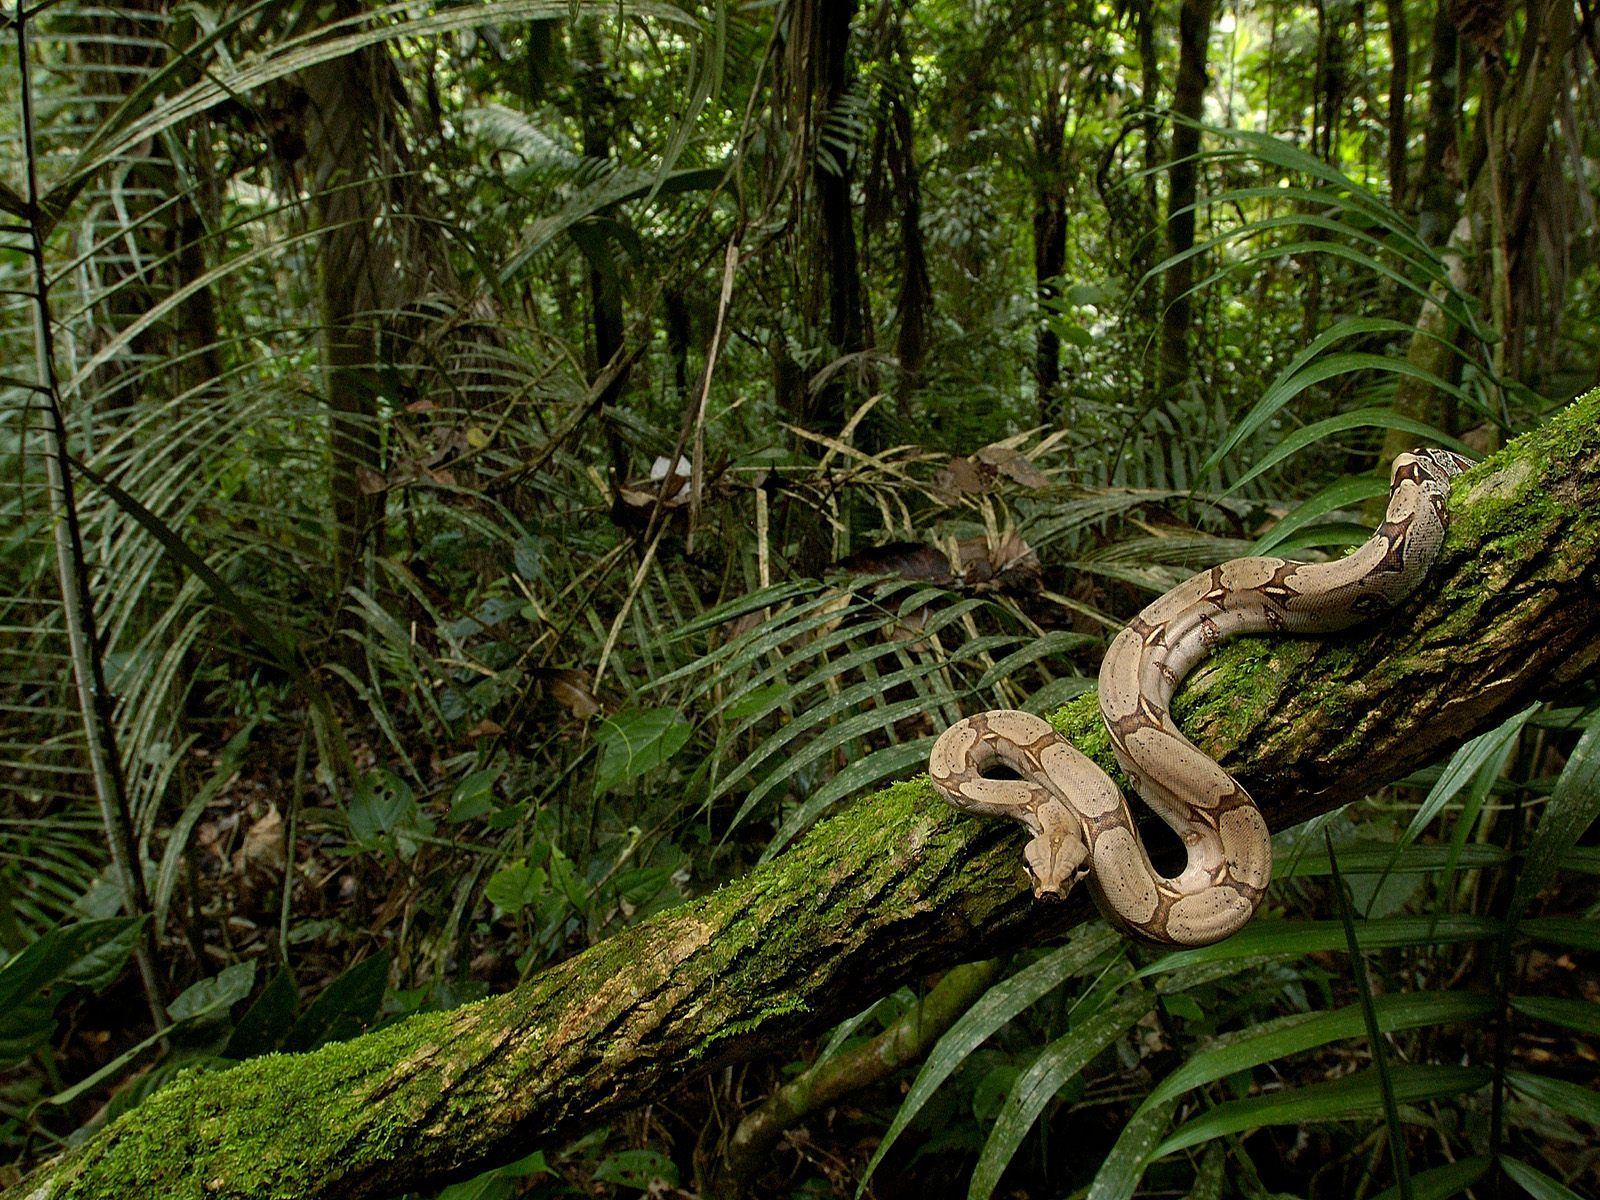 jungle images rainforest   Yahoo Image Search Results jungle in 1600x1200